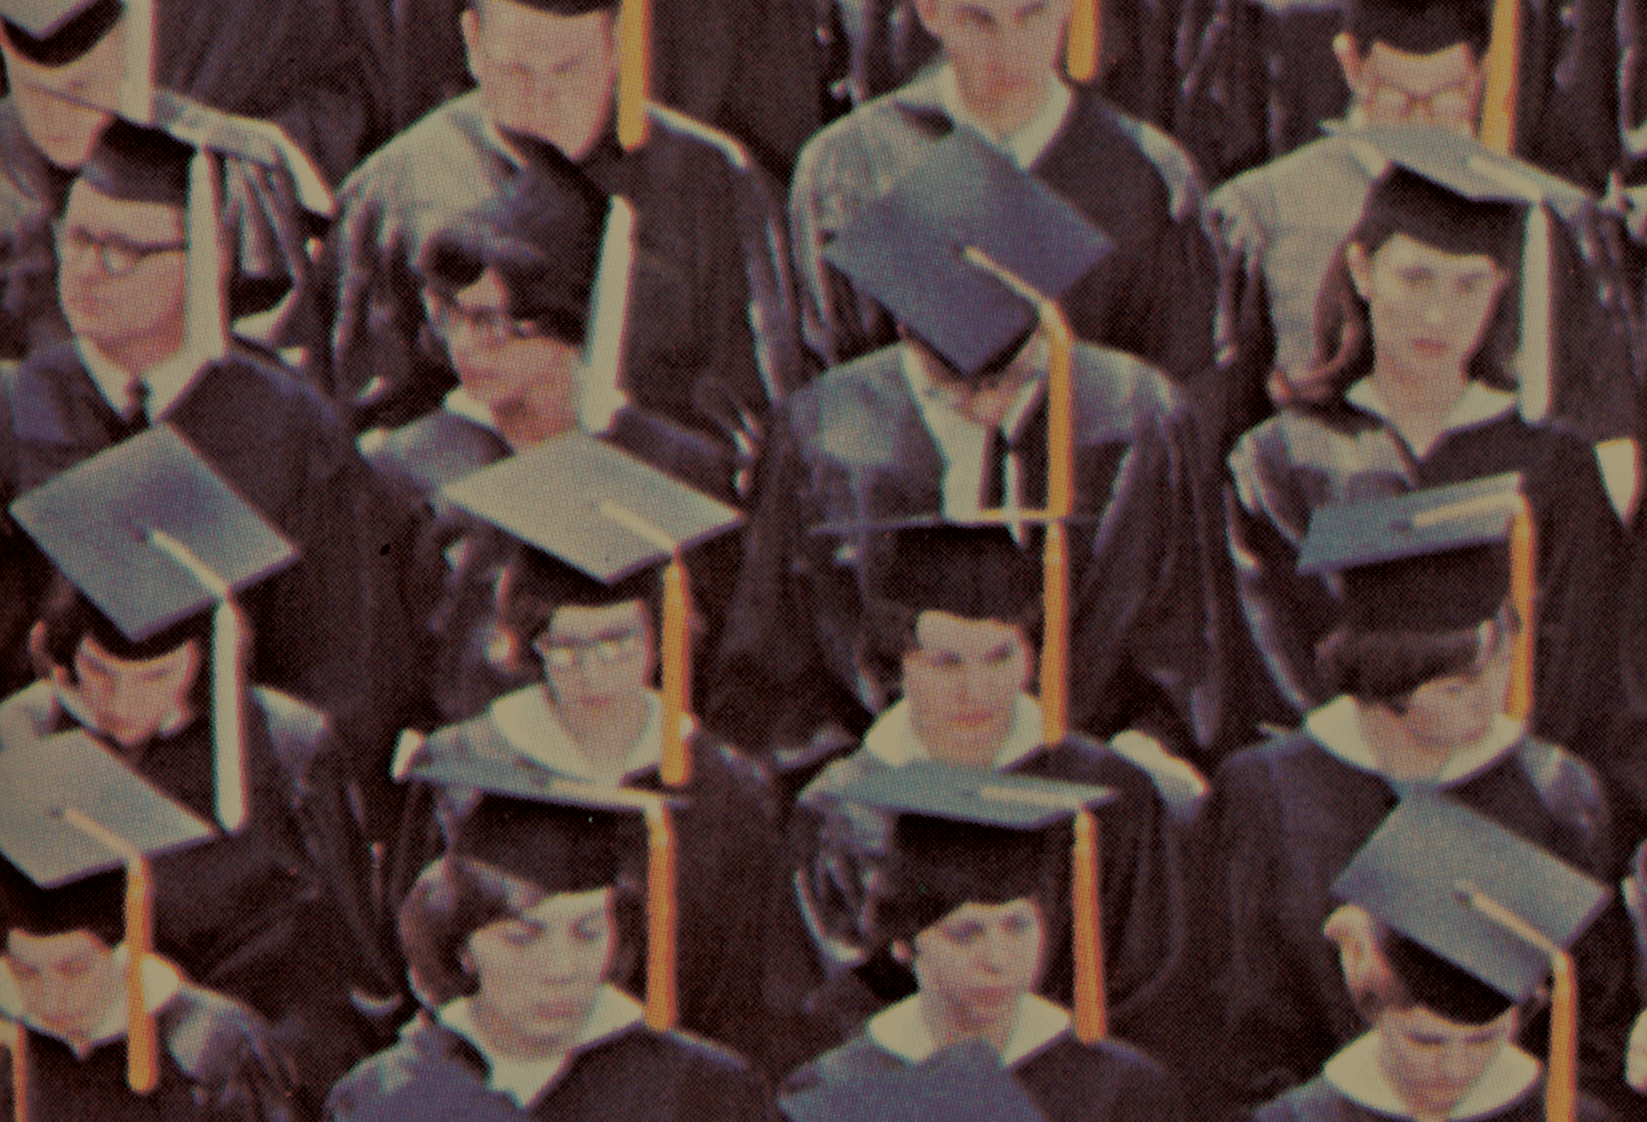 The Class of 1967 prepares for commencement. Photo courtesy of the Mahn Center for Archives & Special Collections.